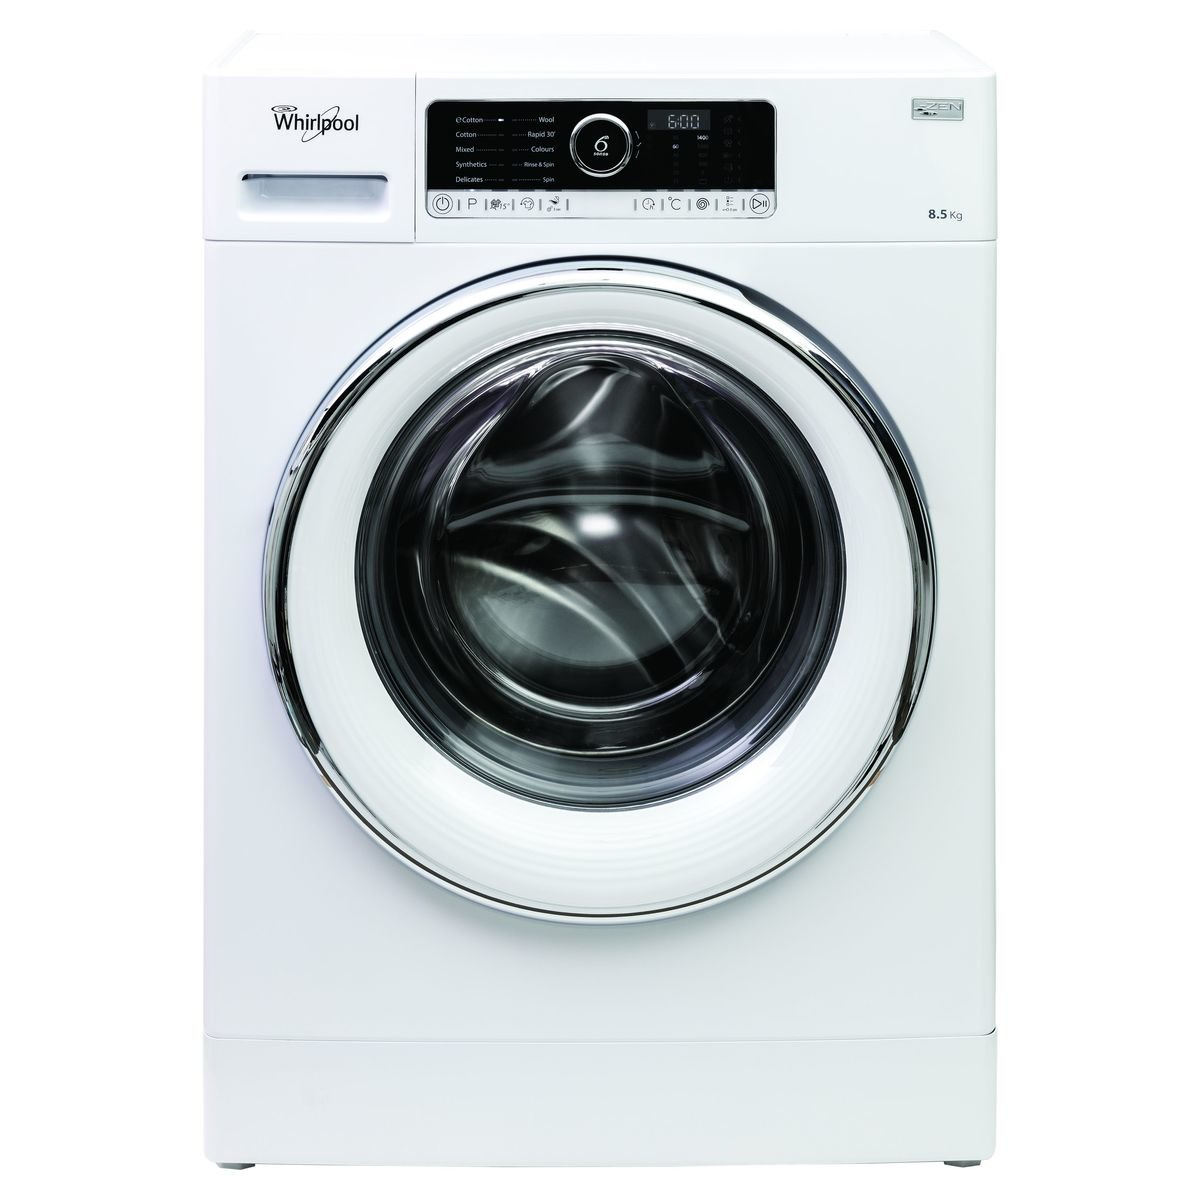 Whirlpool FSCR10420 8.5kg Front Load Washing Machine